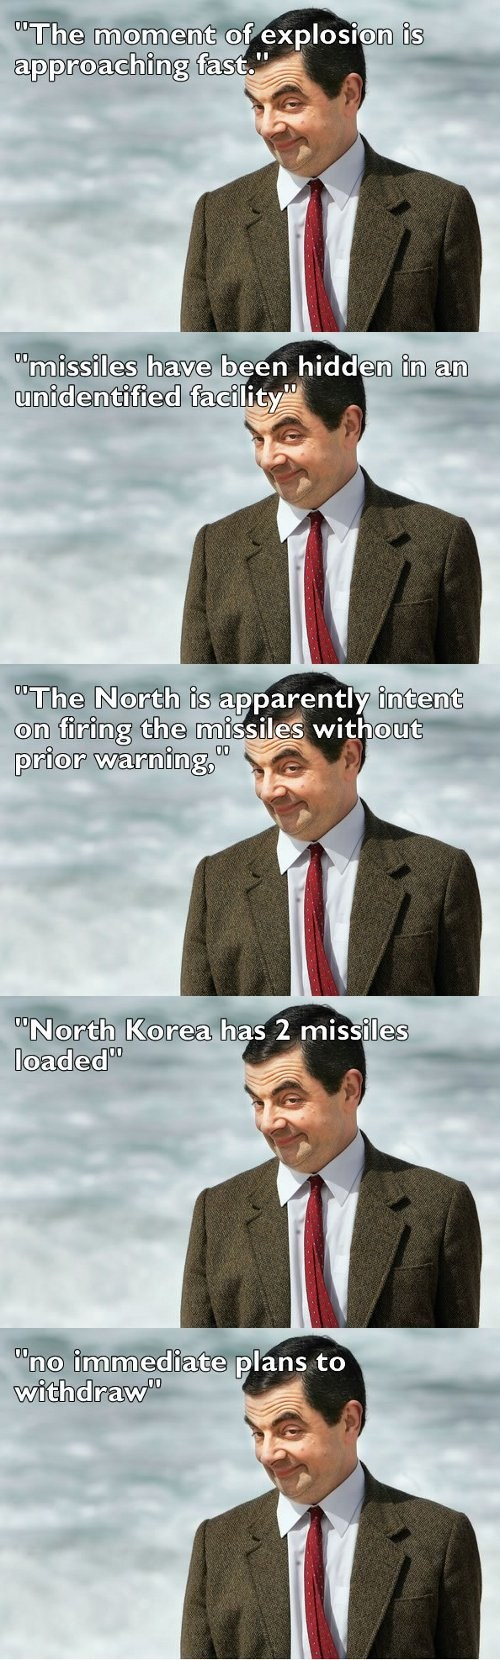 news,mr bean,North Korea,if you know what i mean,mr bean,mr bean,mr bean,mr bean,mr bean